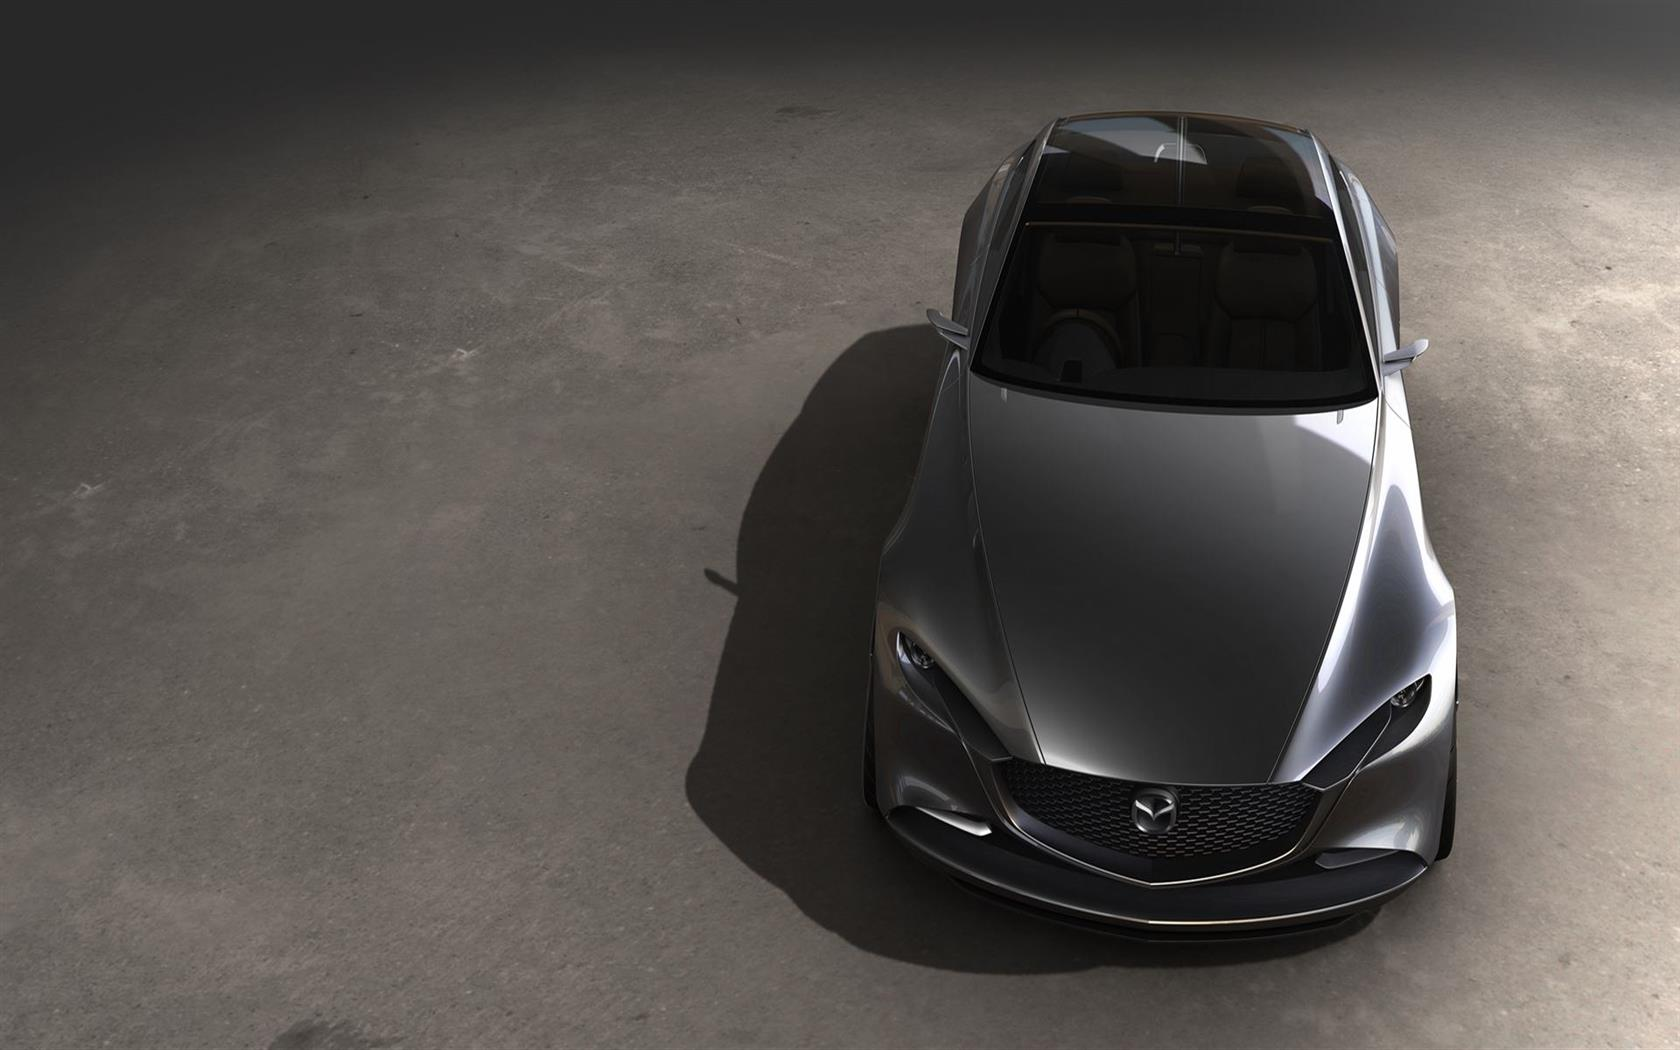 https://www.conceptcarz.com/images/Mazda/Mazda-Vision-Coupe-Concept-Image-01-1680.jpg